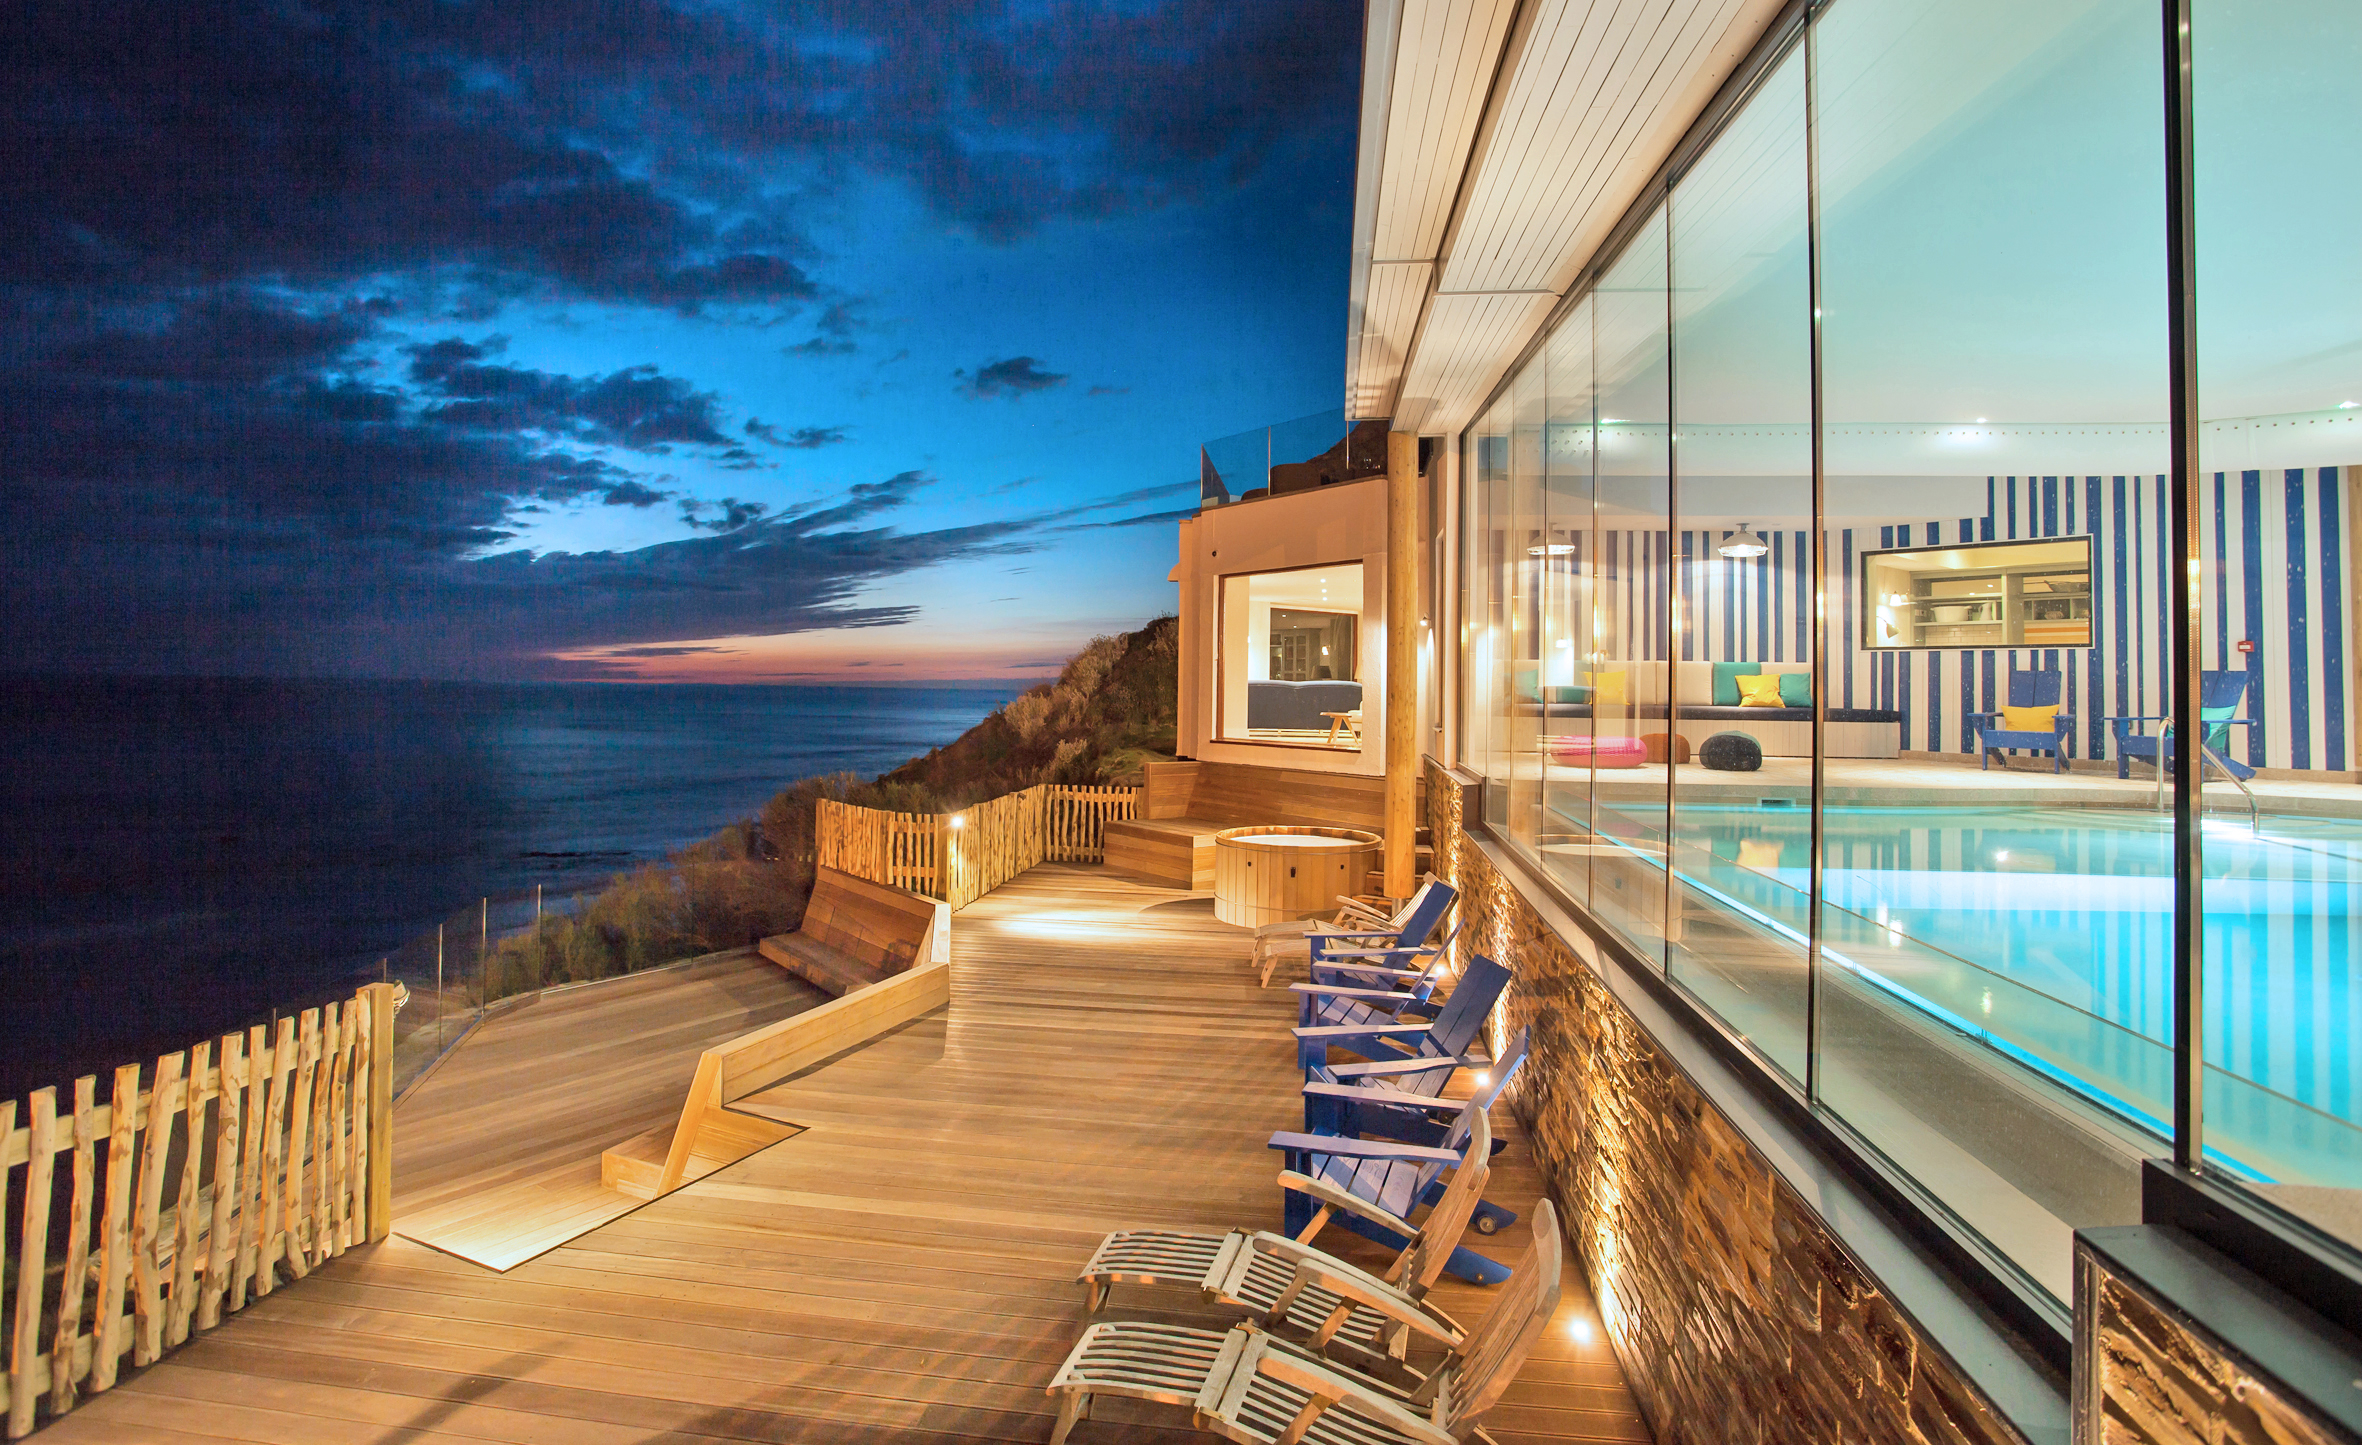 Pool terrace with beautiful sea view at Watergate Bay Hotel in Cornwall